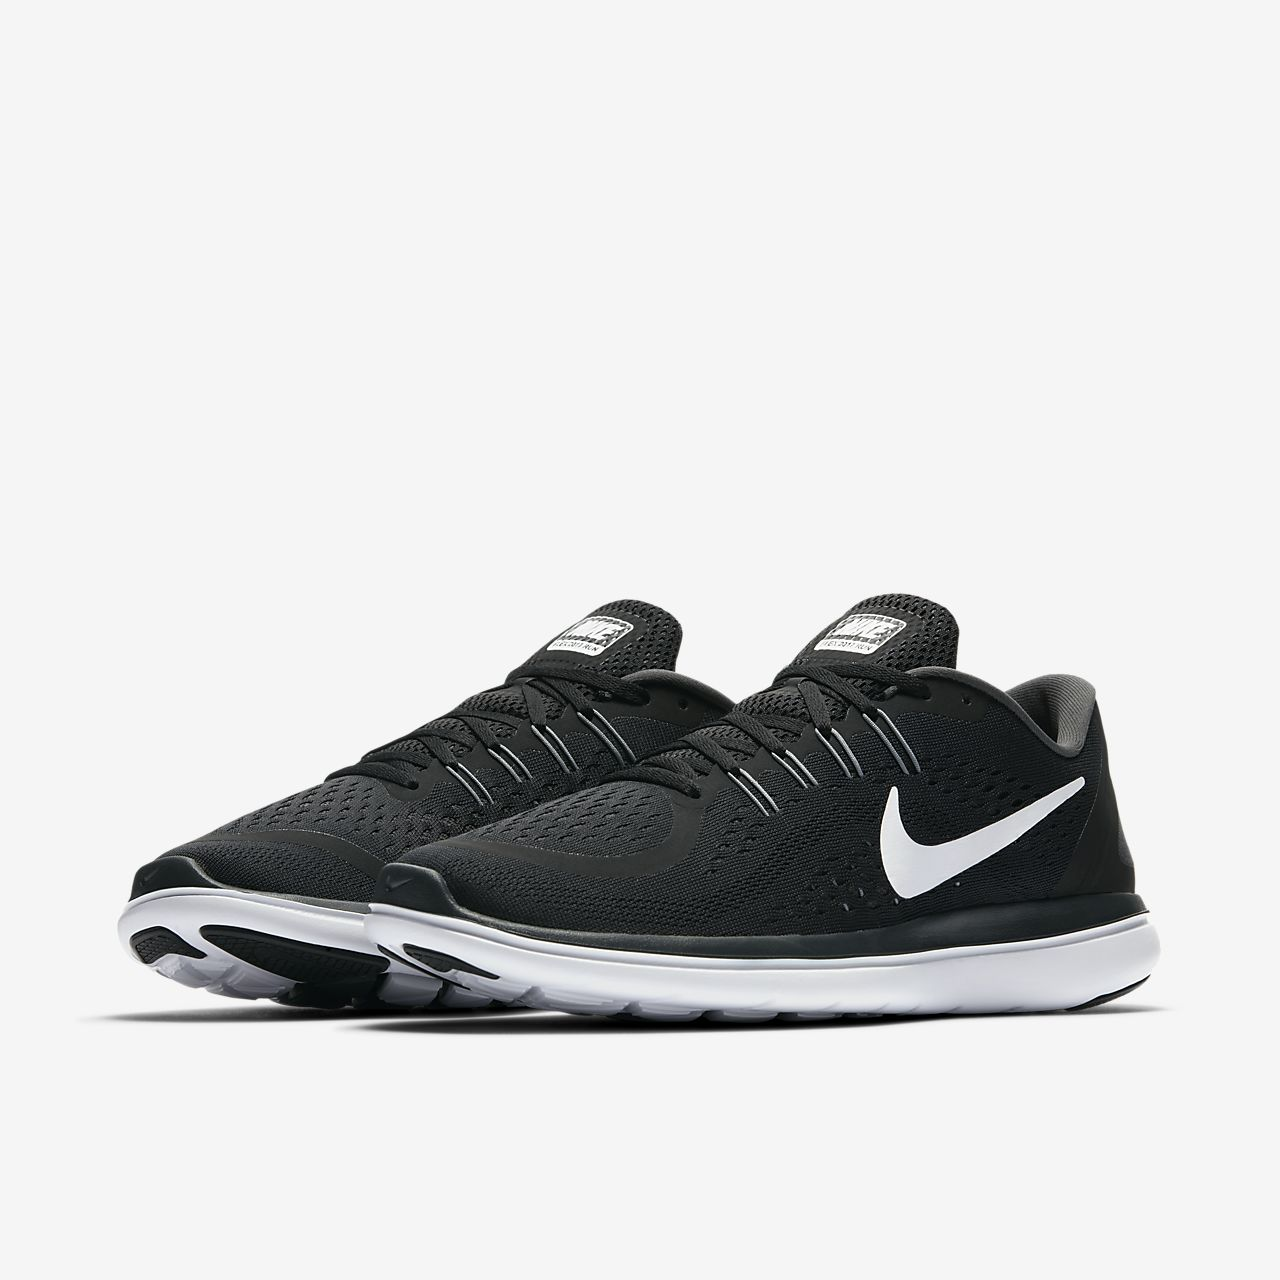 men's air max 2017 running sneakers from finish line nz